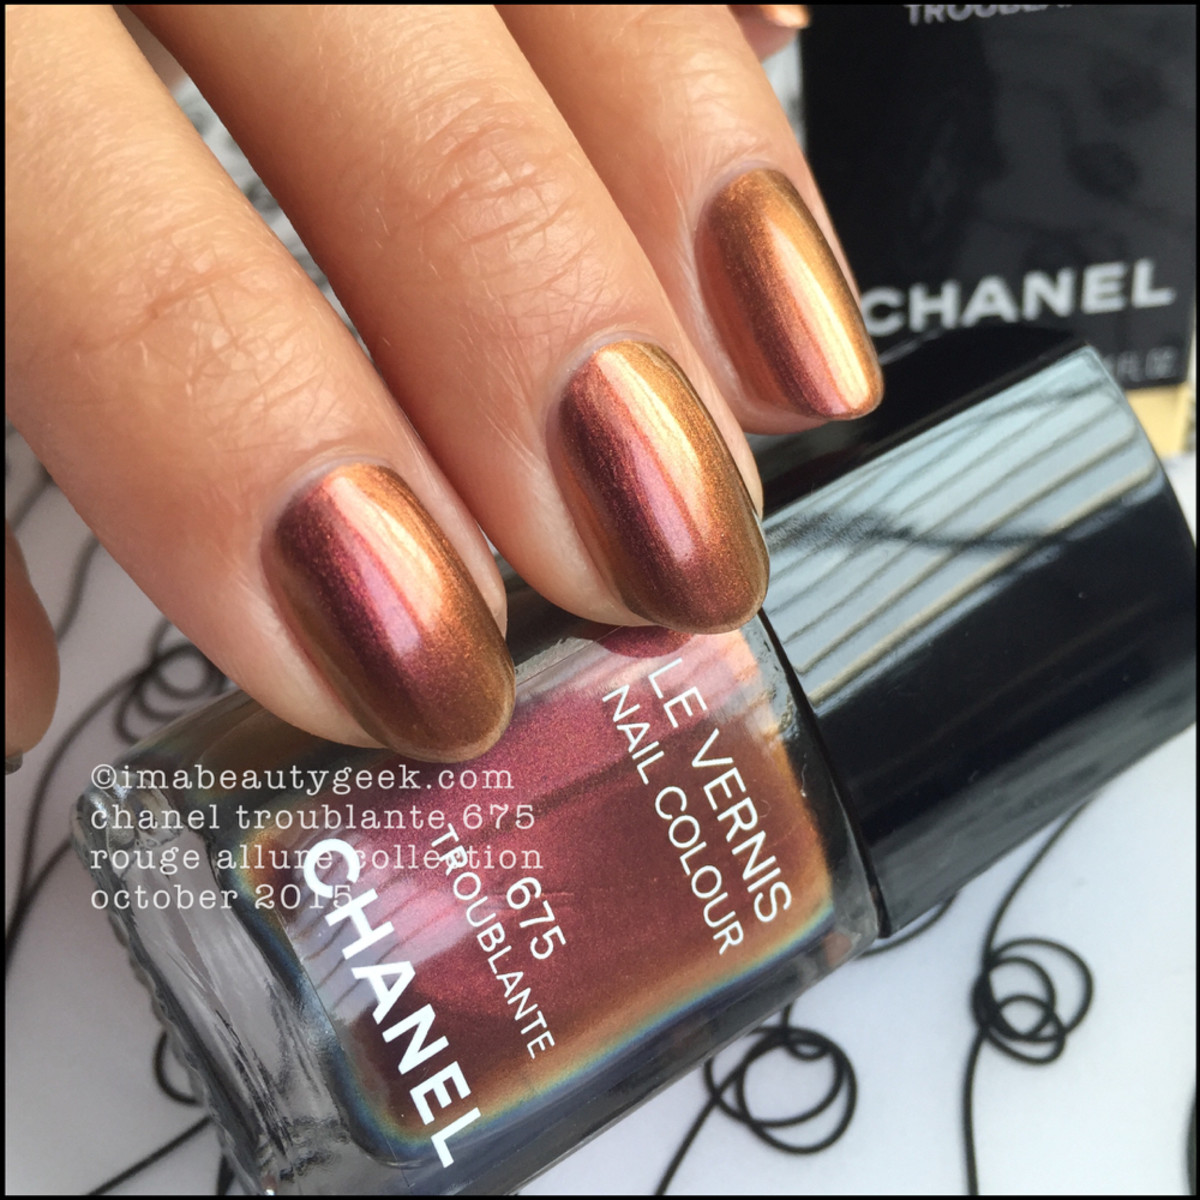 Chanel Rouge Allure Collection Troublante Vernis 675_7